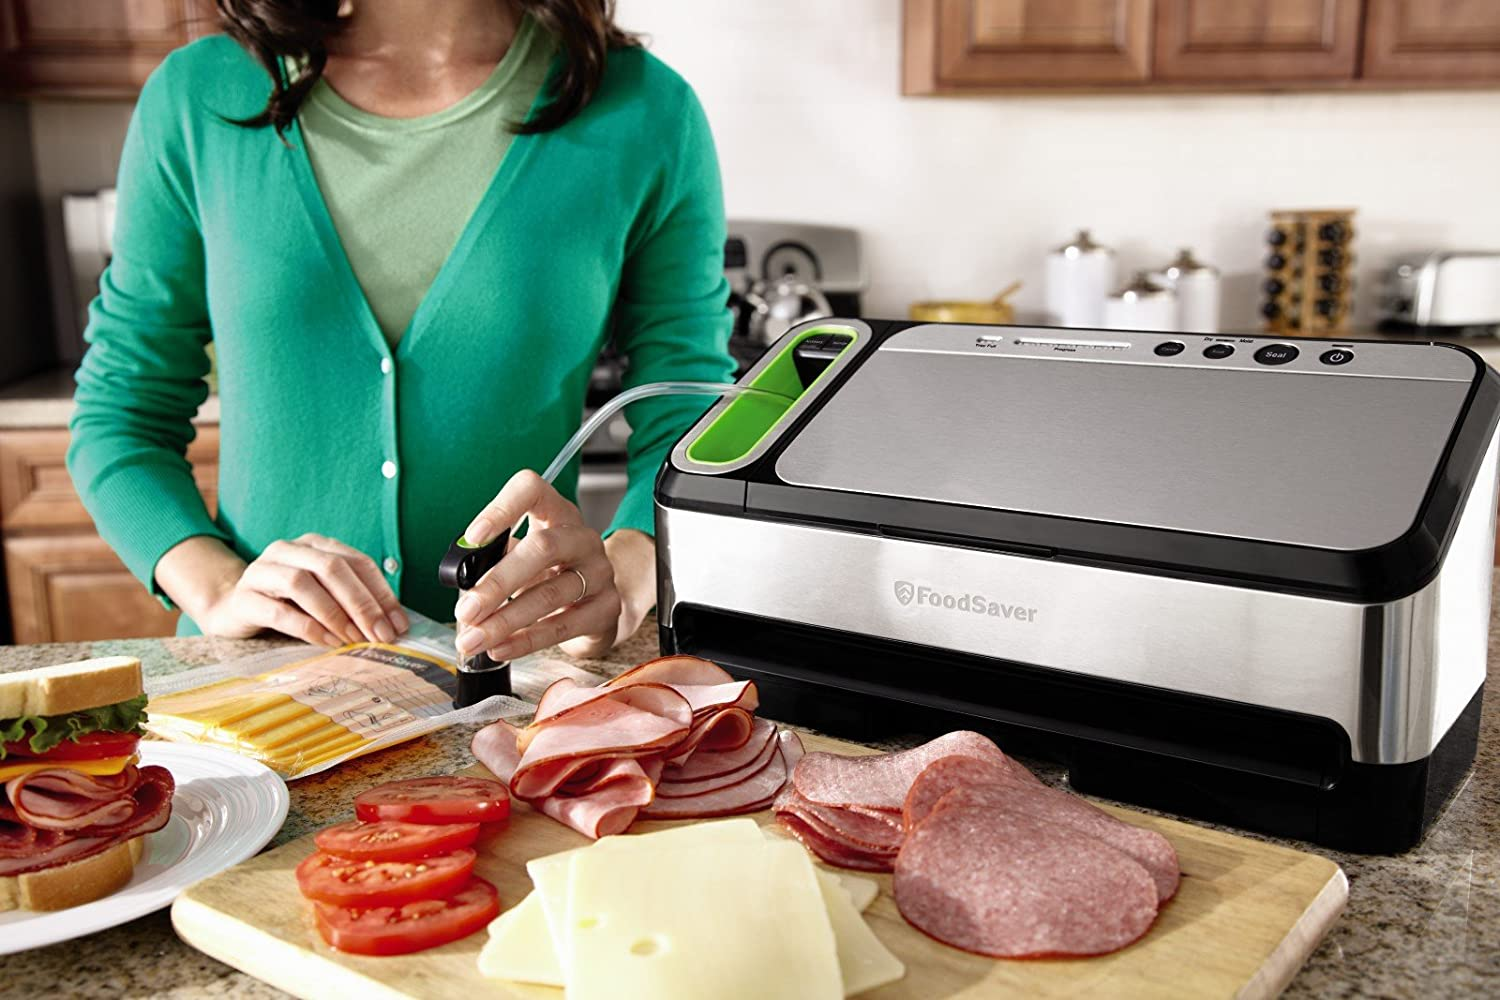 The FoodSaver 4840 performs brilliantly and is one of the best vacuum sealers under $200.